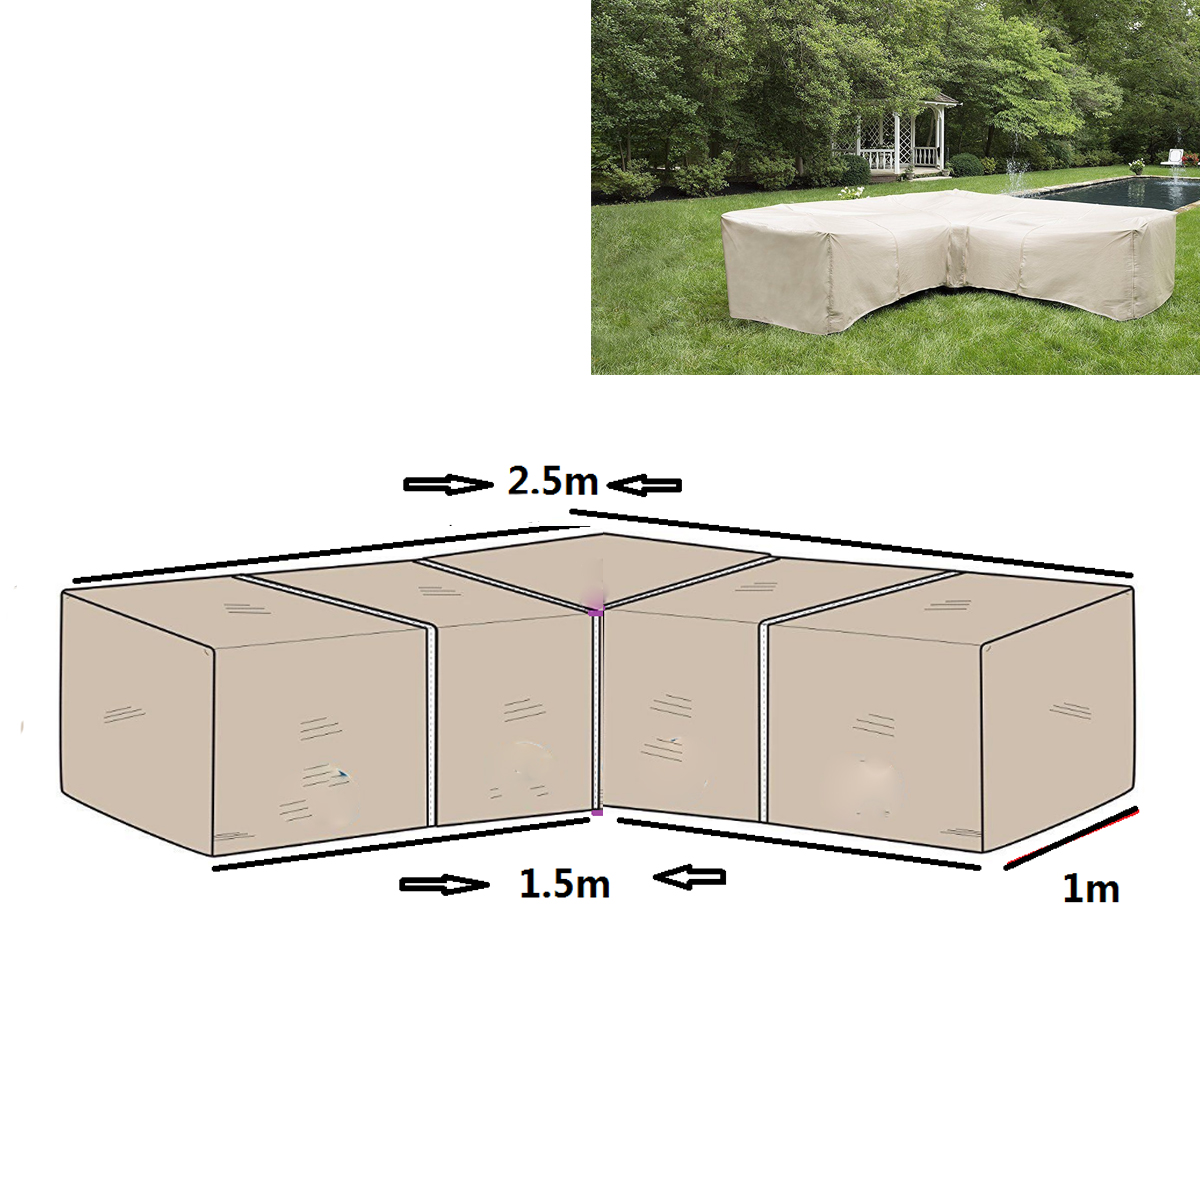 2pcs Garden Furniture L Shape Sofa Cover Slipcover Polyester Piano Sofa Couch Covers Living Room Outdoor Waterproof Dustproof All-purpose Covers